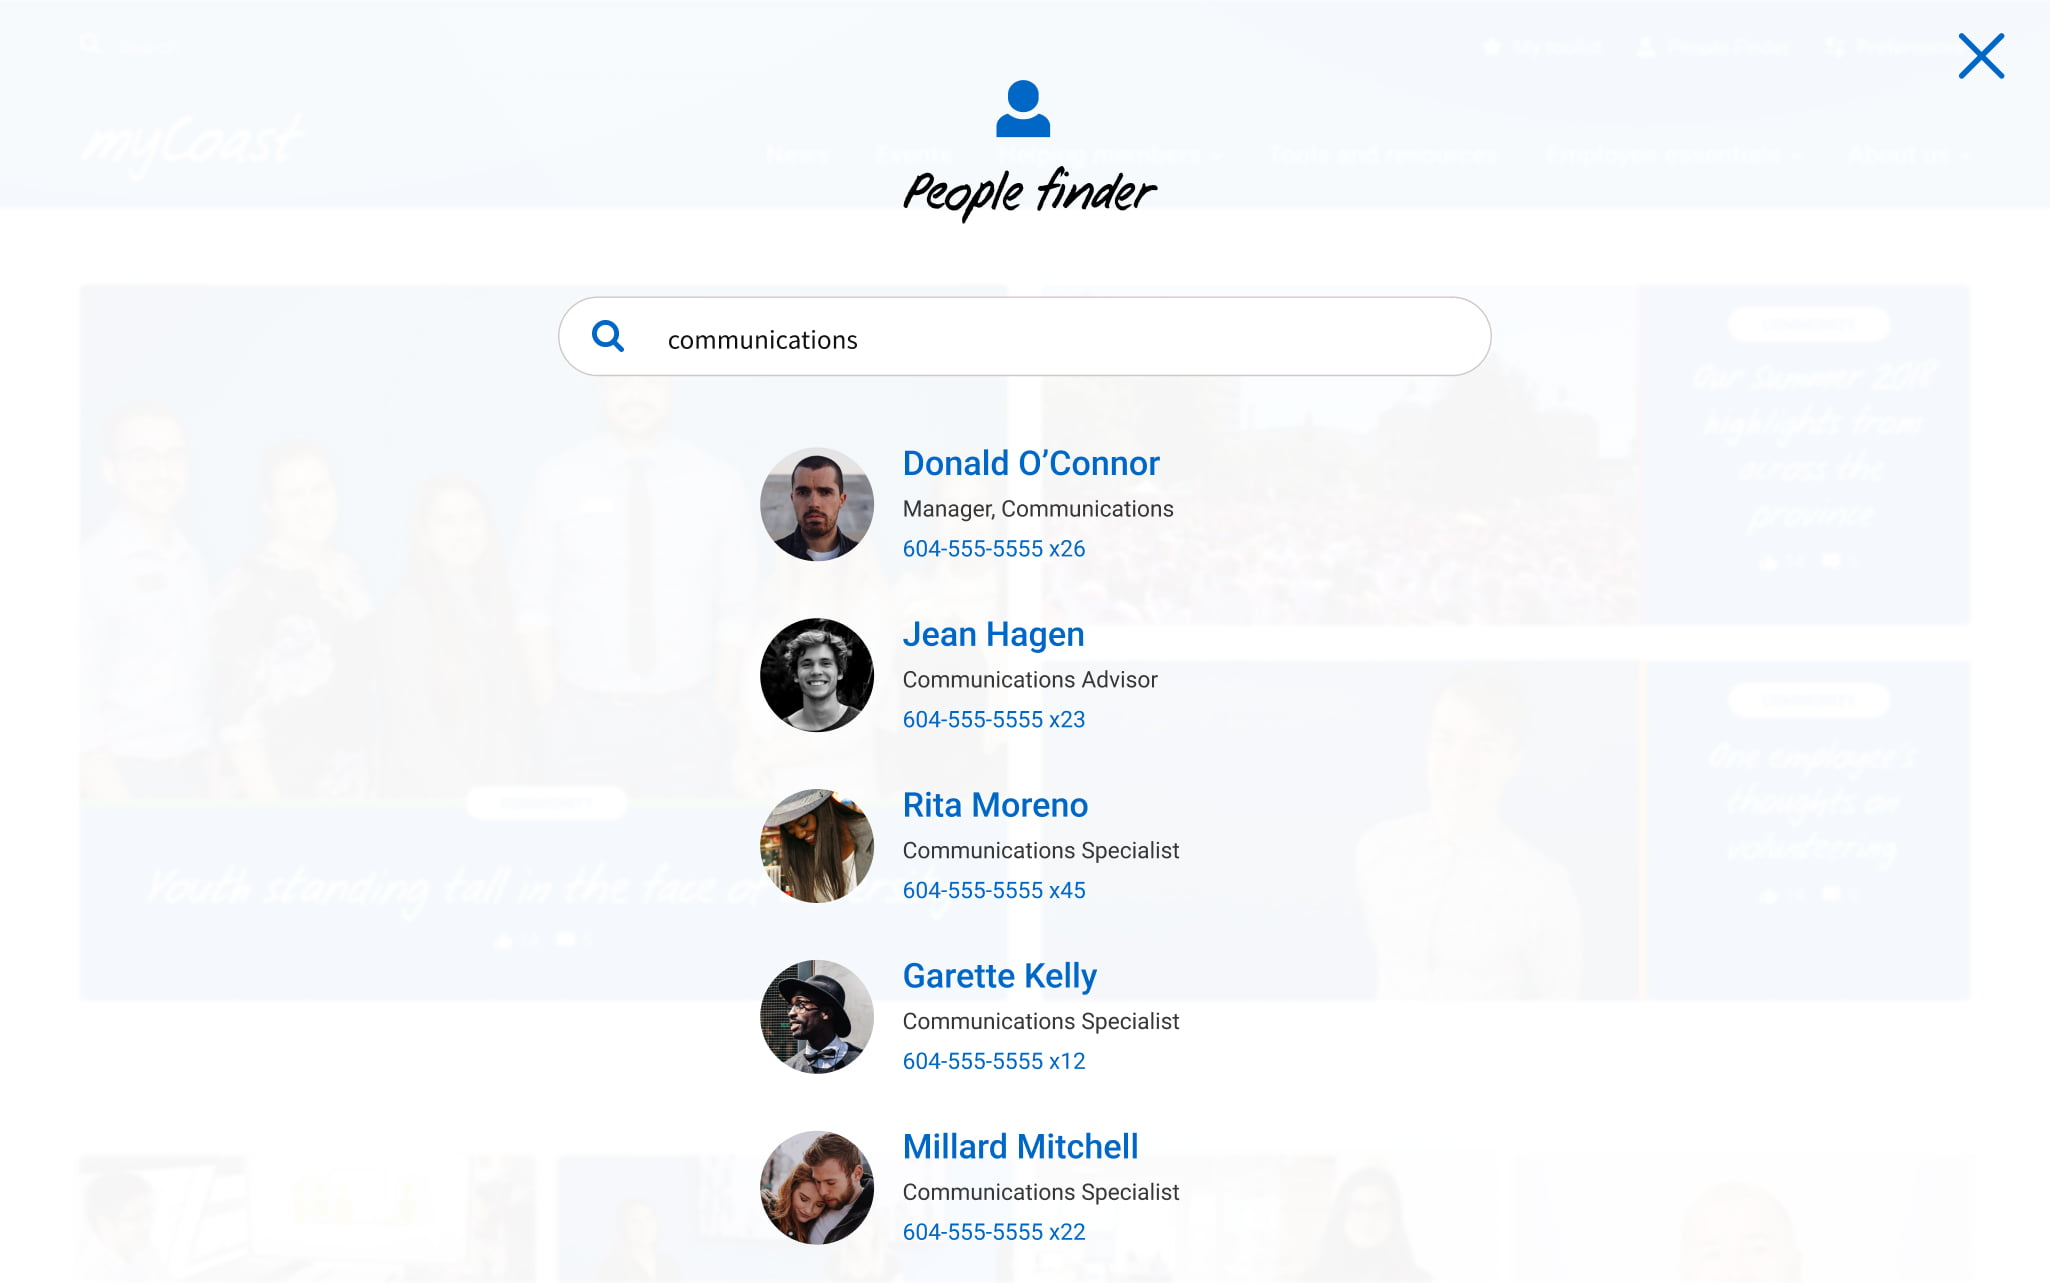 A screenshot of the people finder.